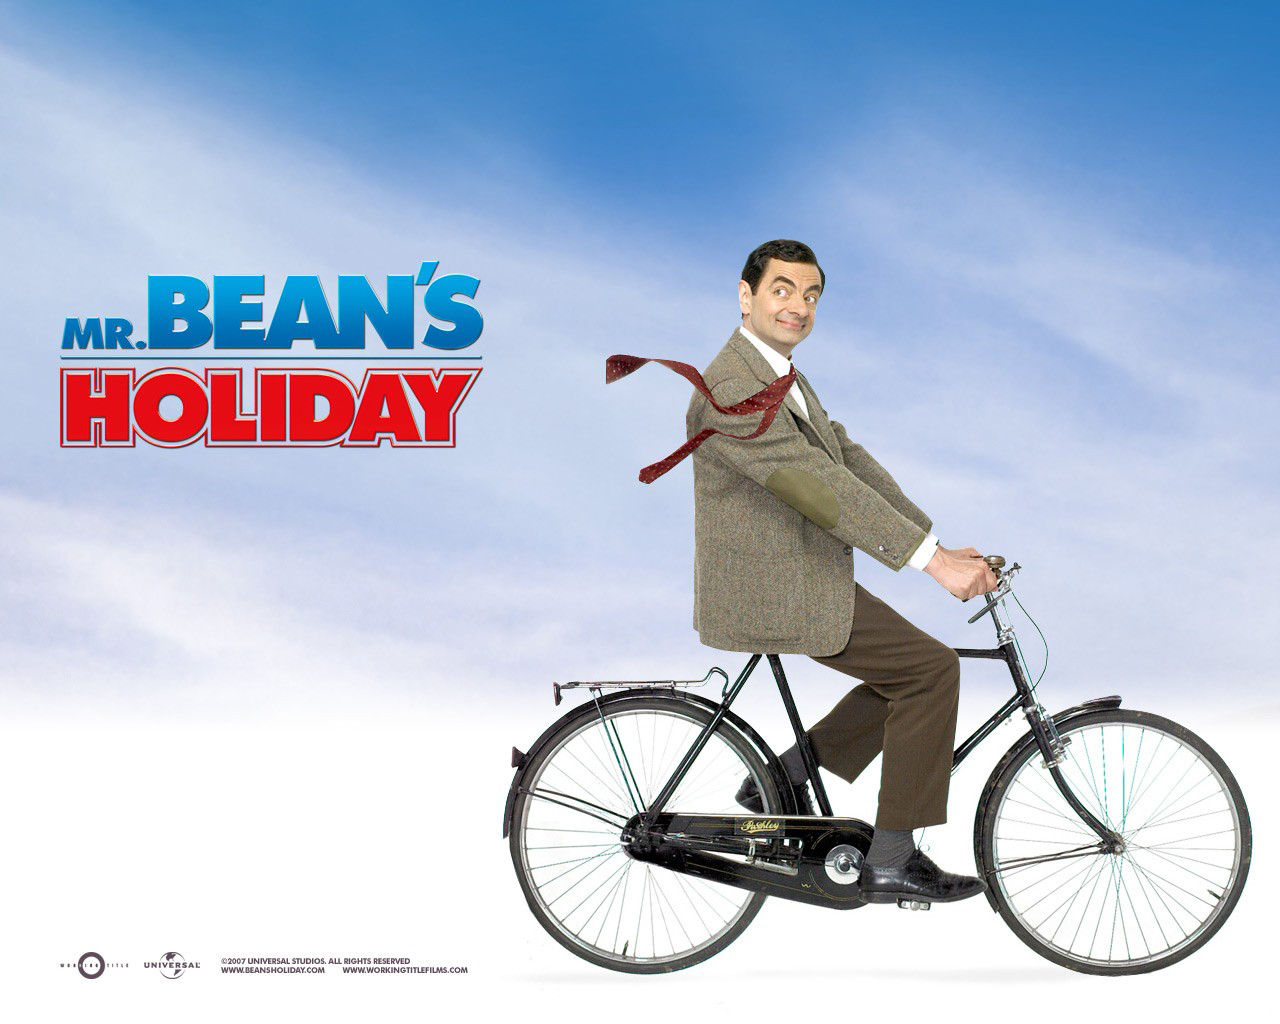 Download wallpaper the movie mr bean holiday mister mr bean holiday